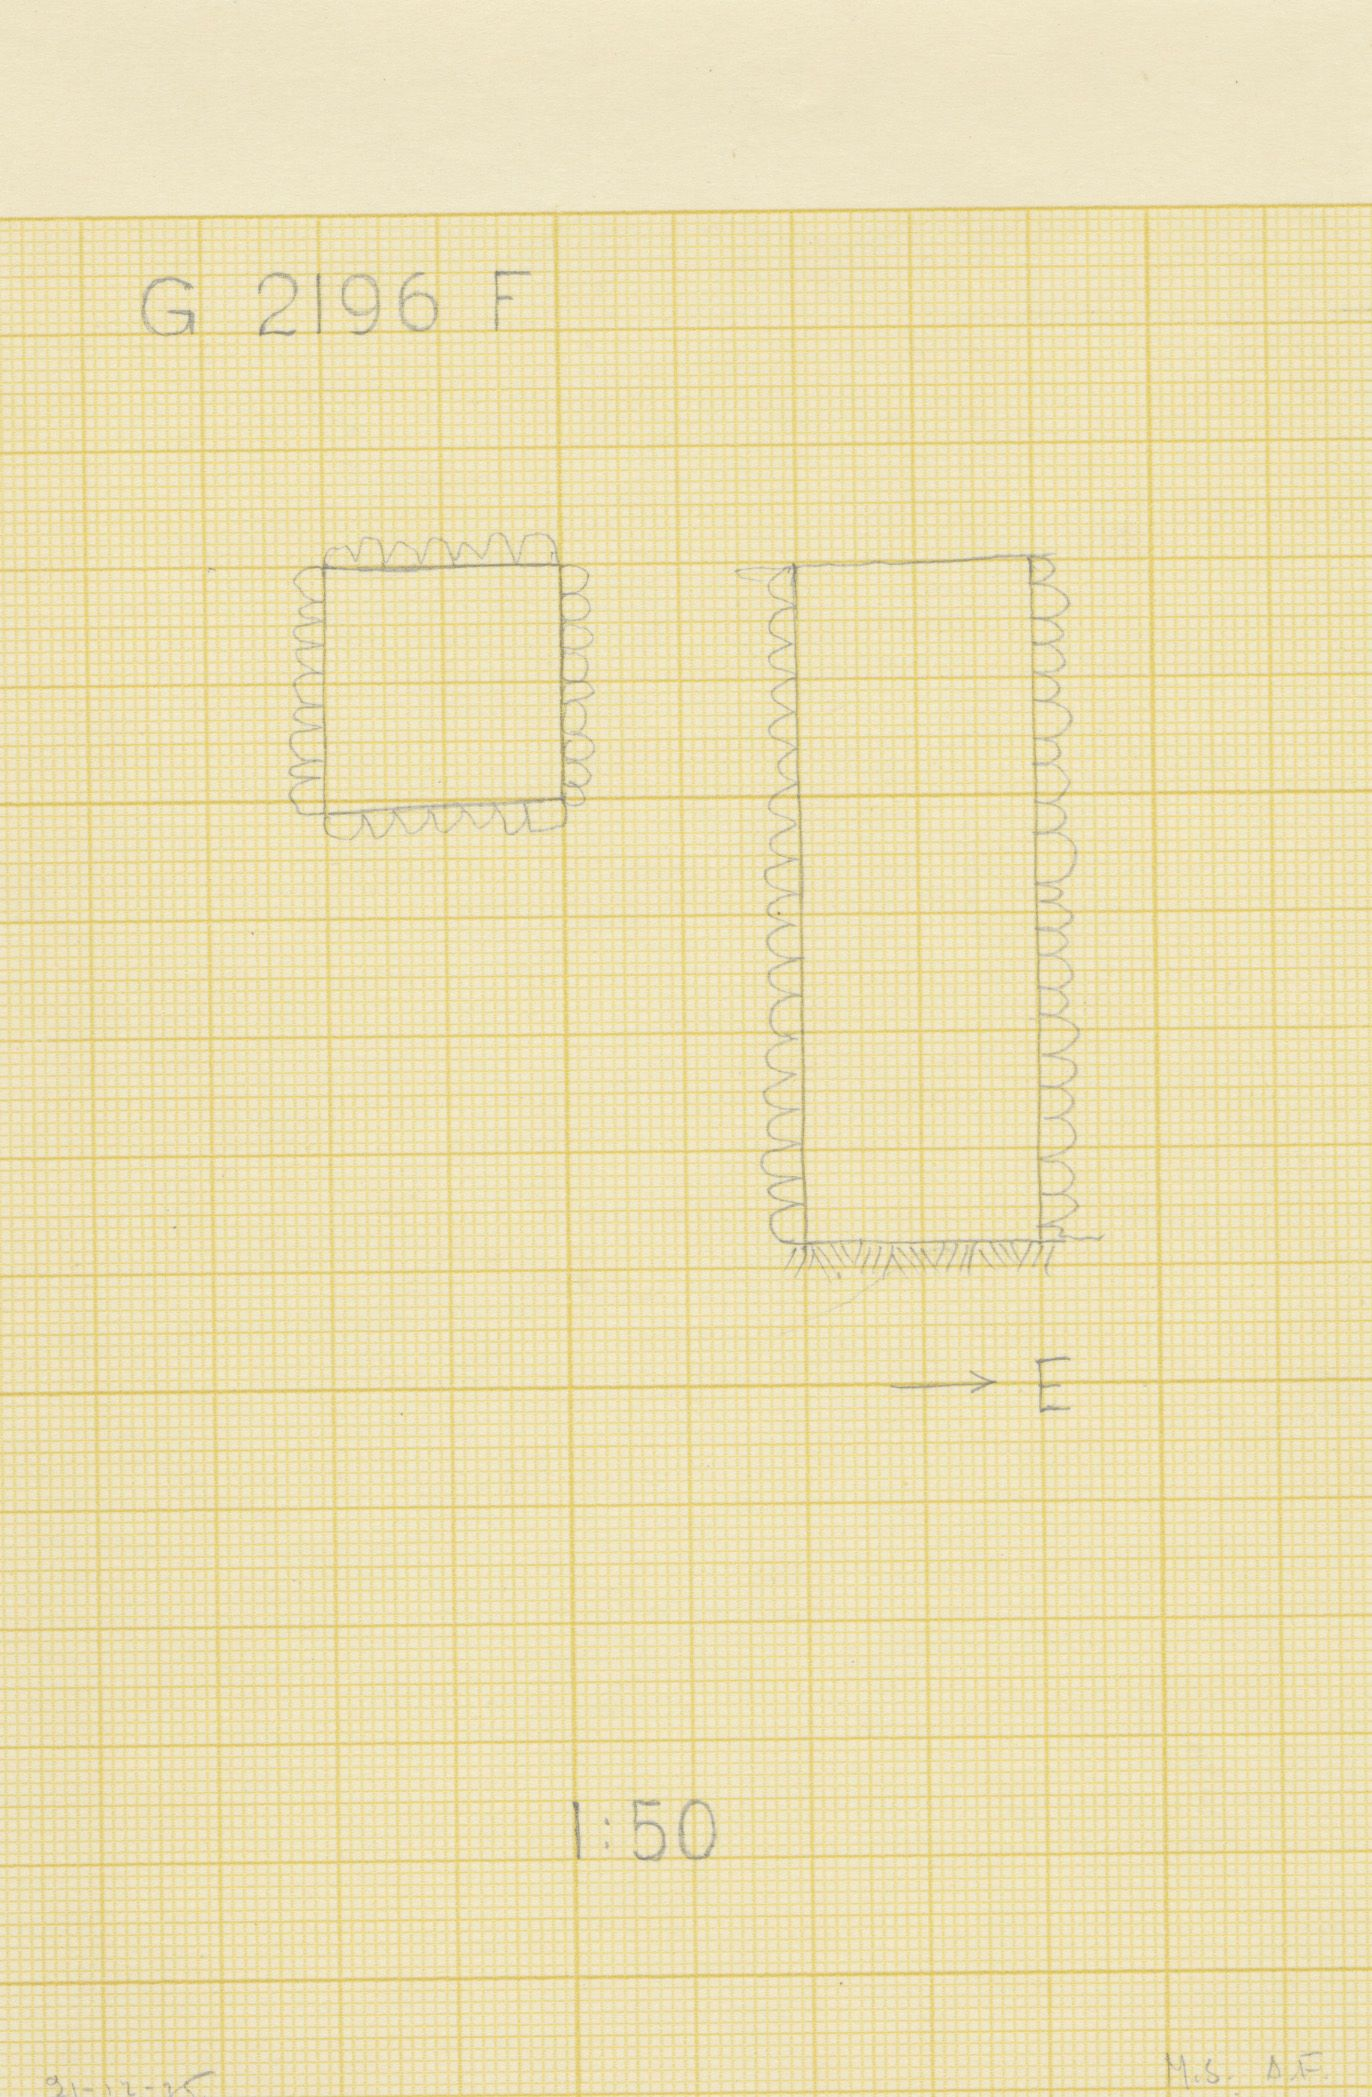 Maps and plans: G 2196, Shaft F